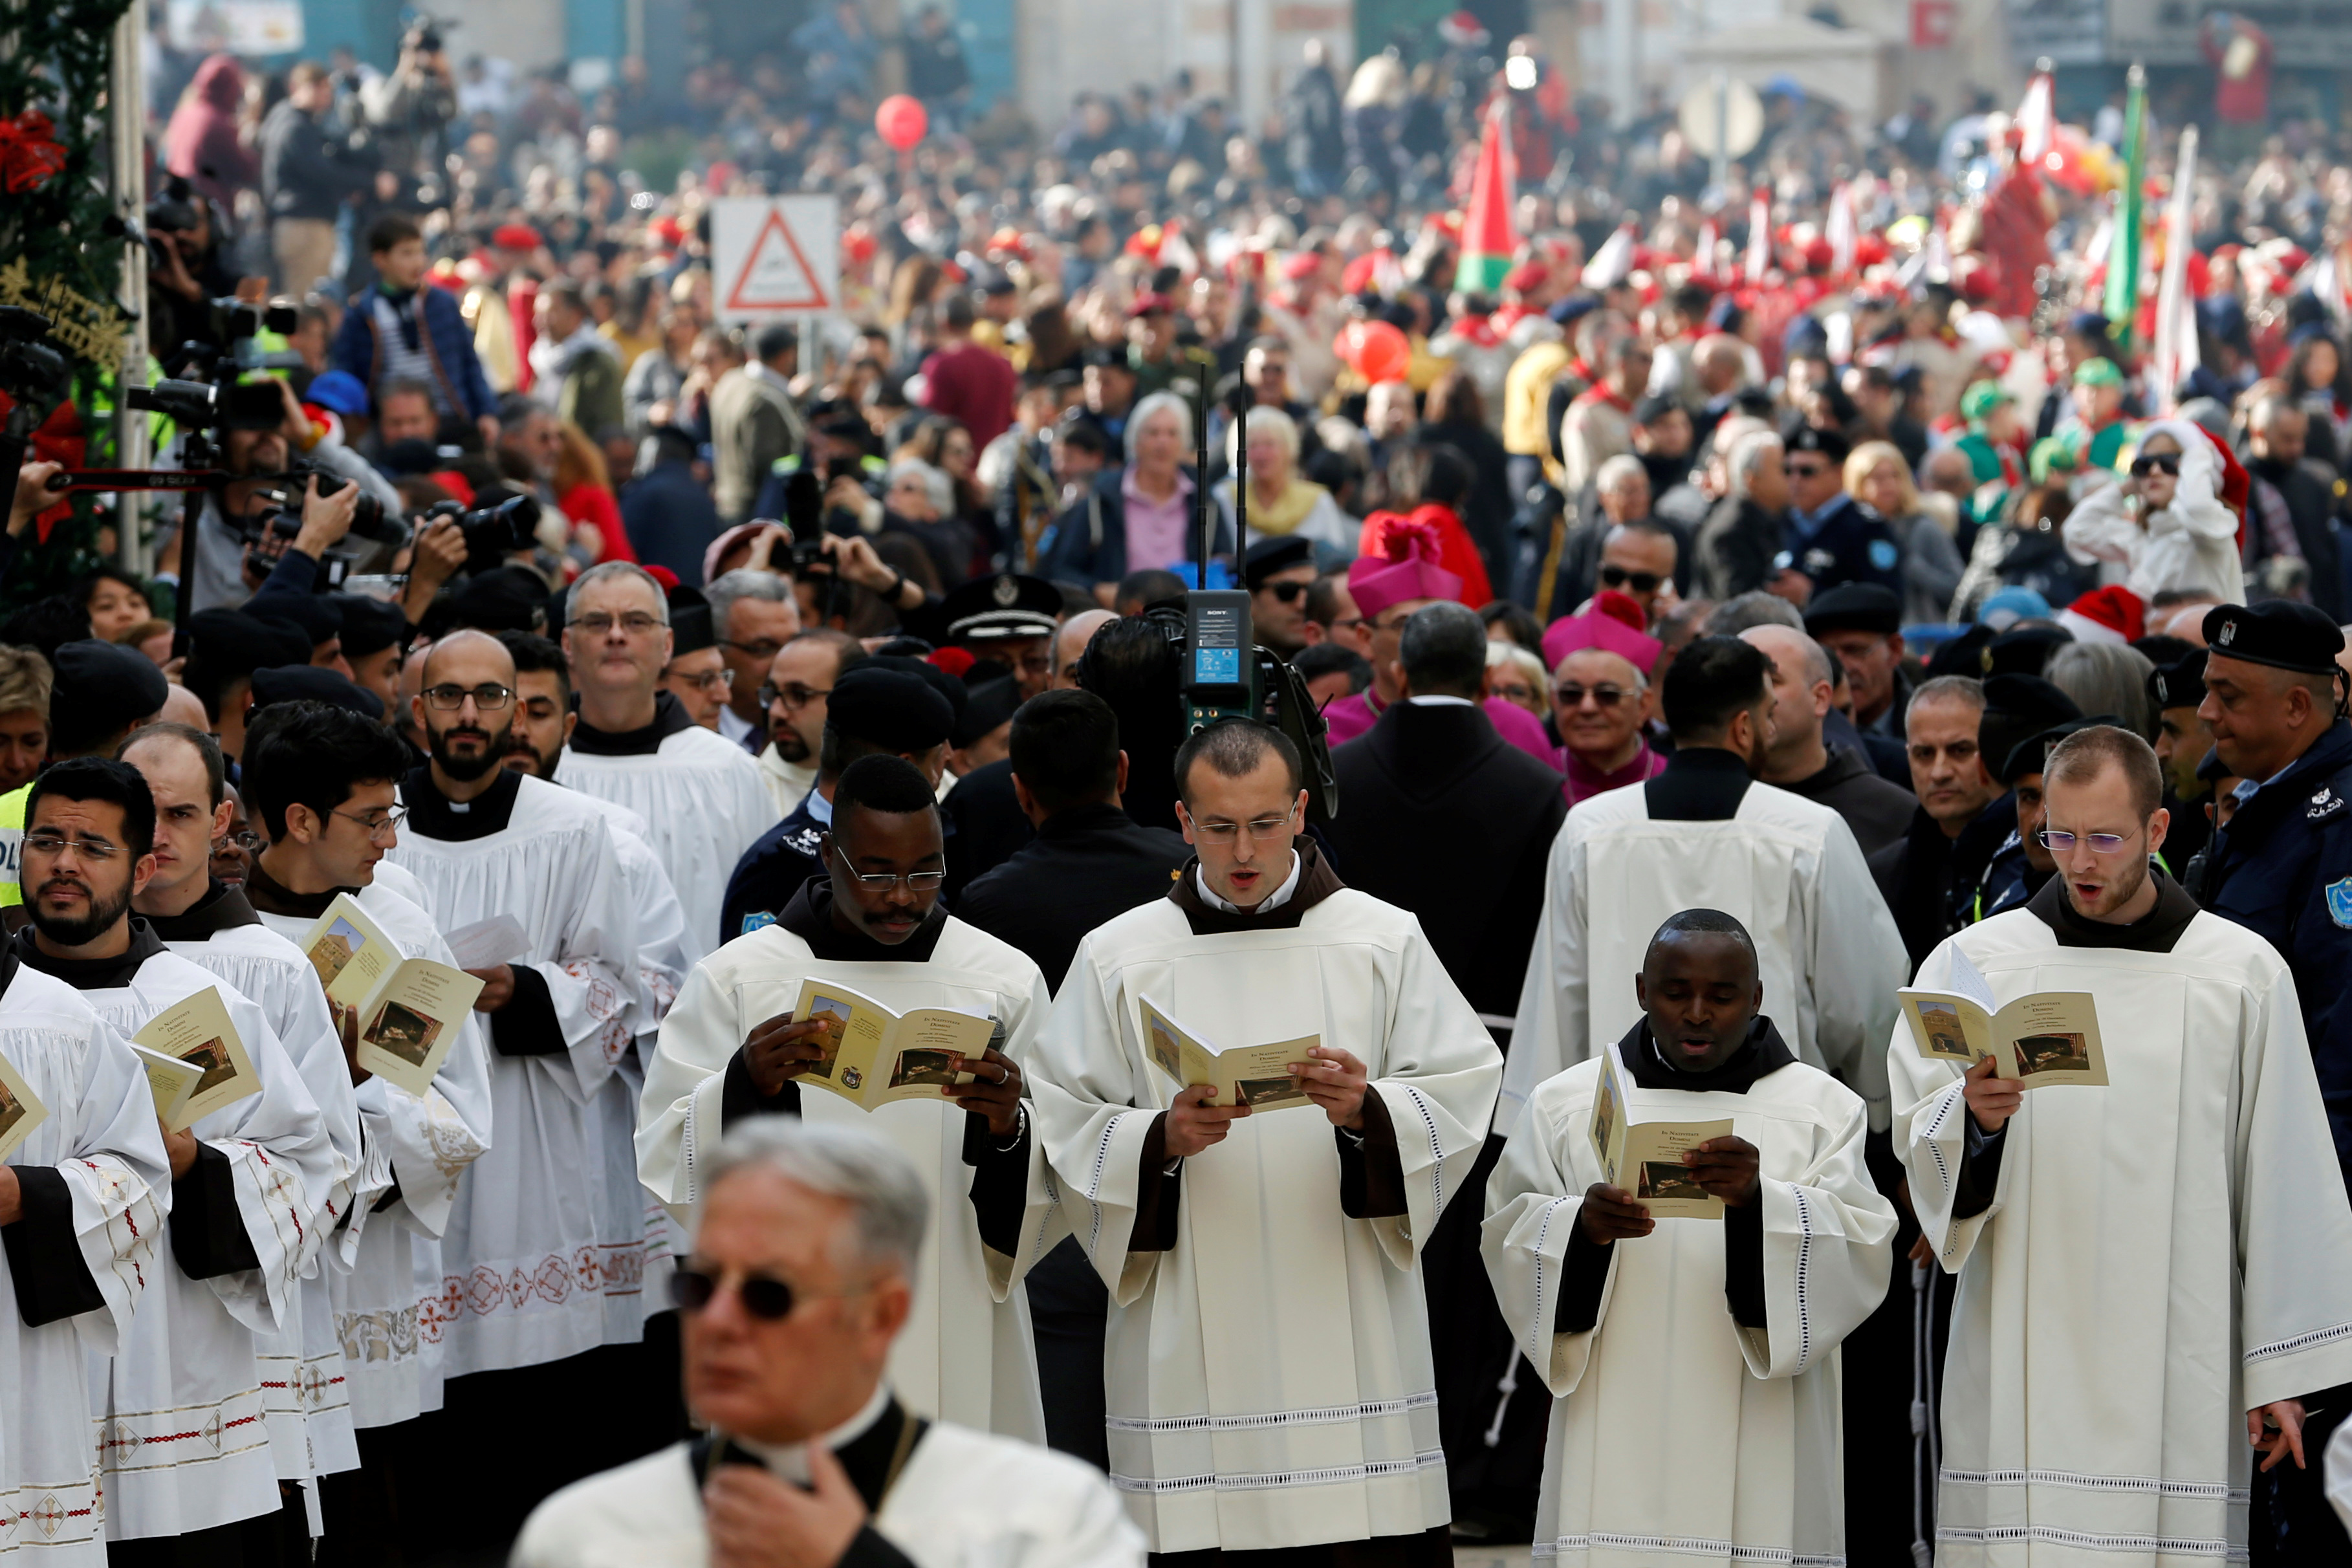 Clergymen attend Christmas celebrations at Manger Square outside the Church of the Nativity in Bethlehem, in the Israeli-occupied West Bank, Dec. 24, 2018.